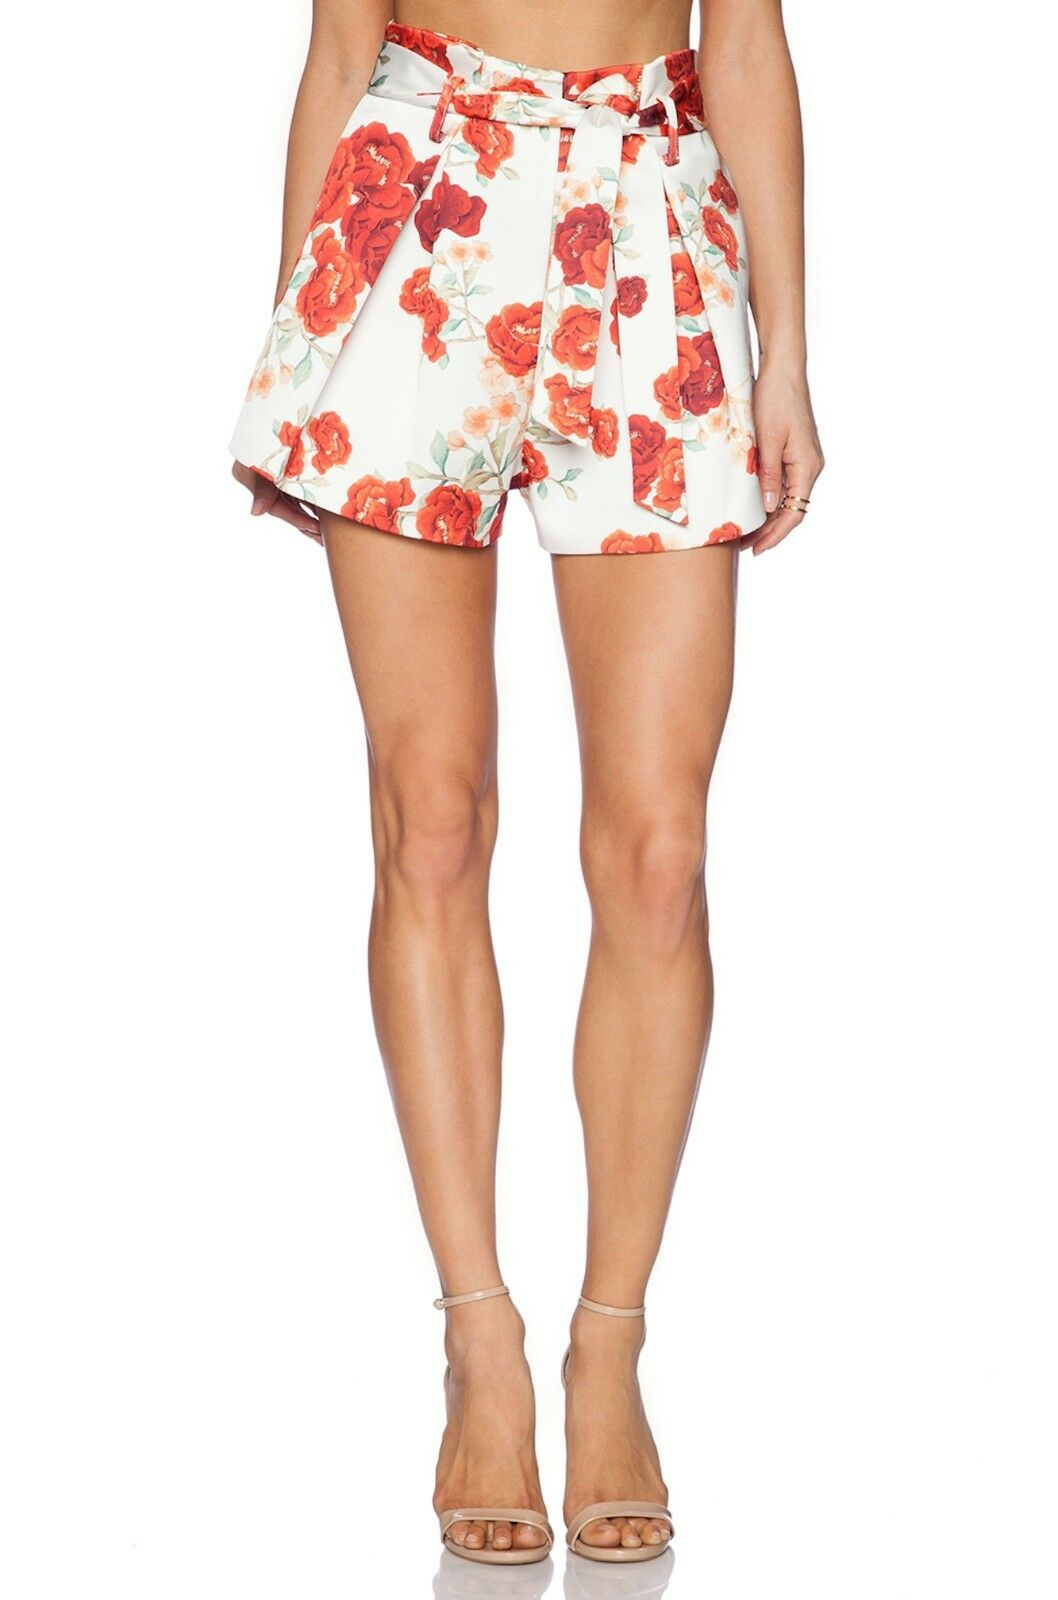 Cameo C MEO Collective The Label  Clique Dress Shorts Red Floral Sz XS  168 NWT